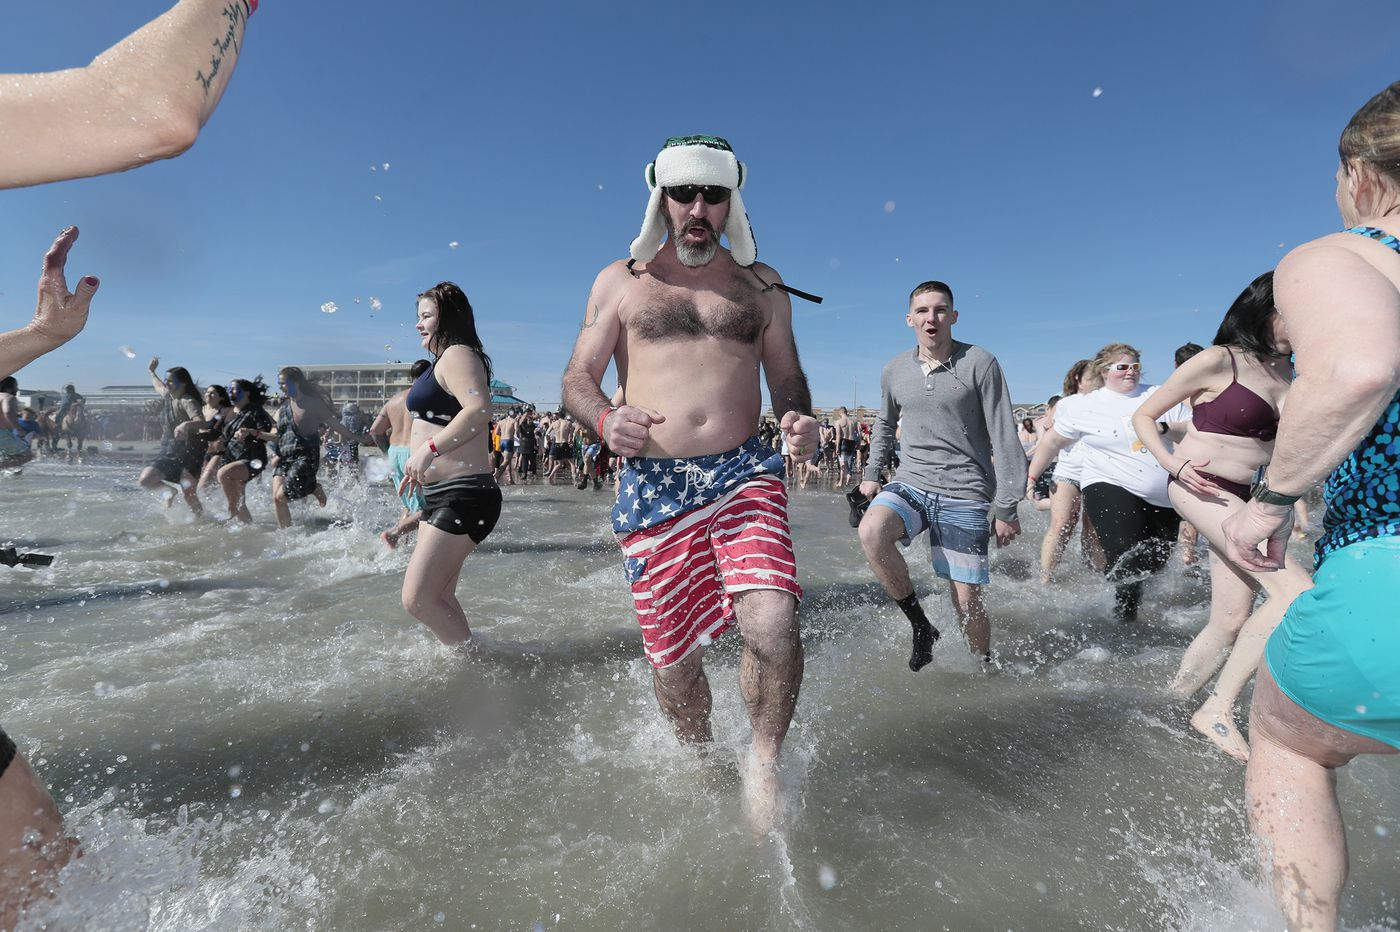 Winter finally arrived —unfortunately just when these people plunged into the ocean